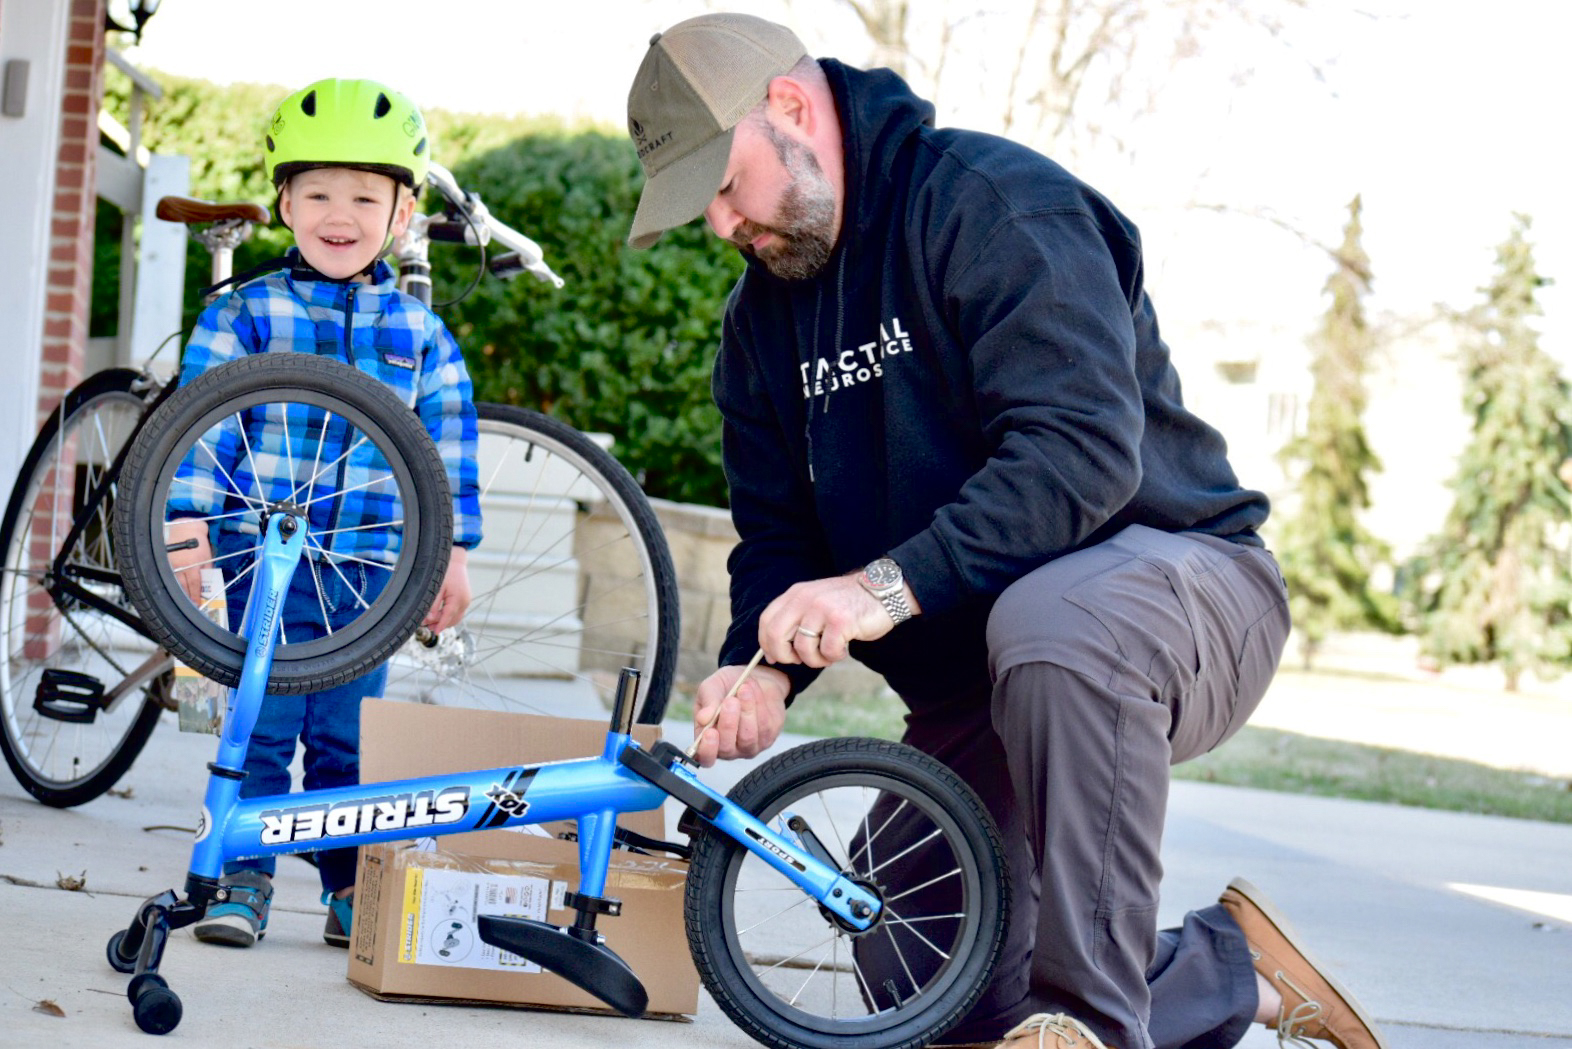 Dad helping attach Easy-Ride Pedal Kit to Strider 14x Sport blue bike with kid watching